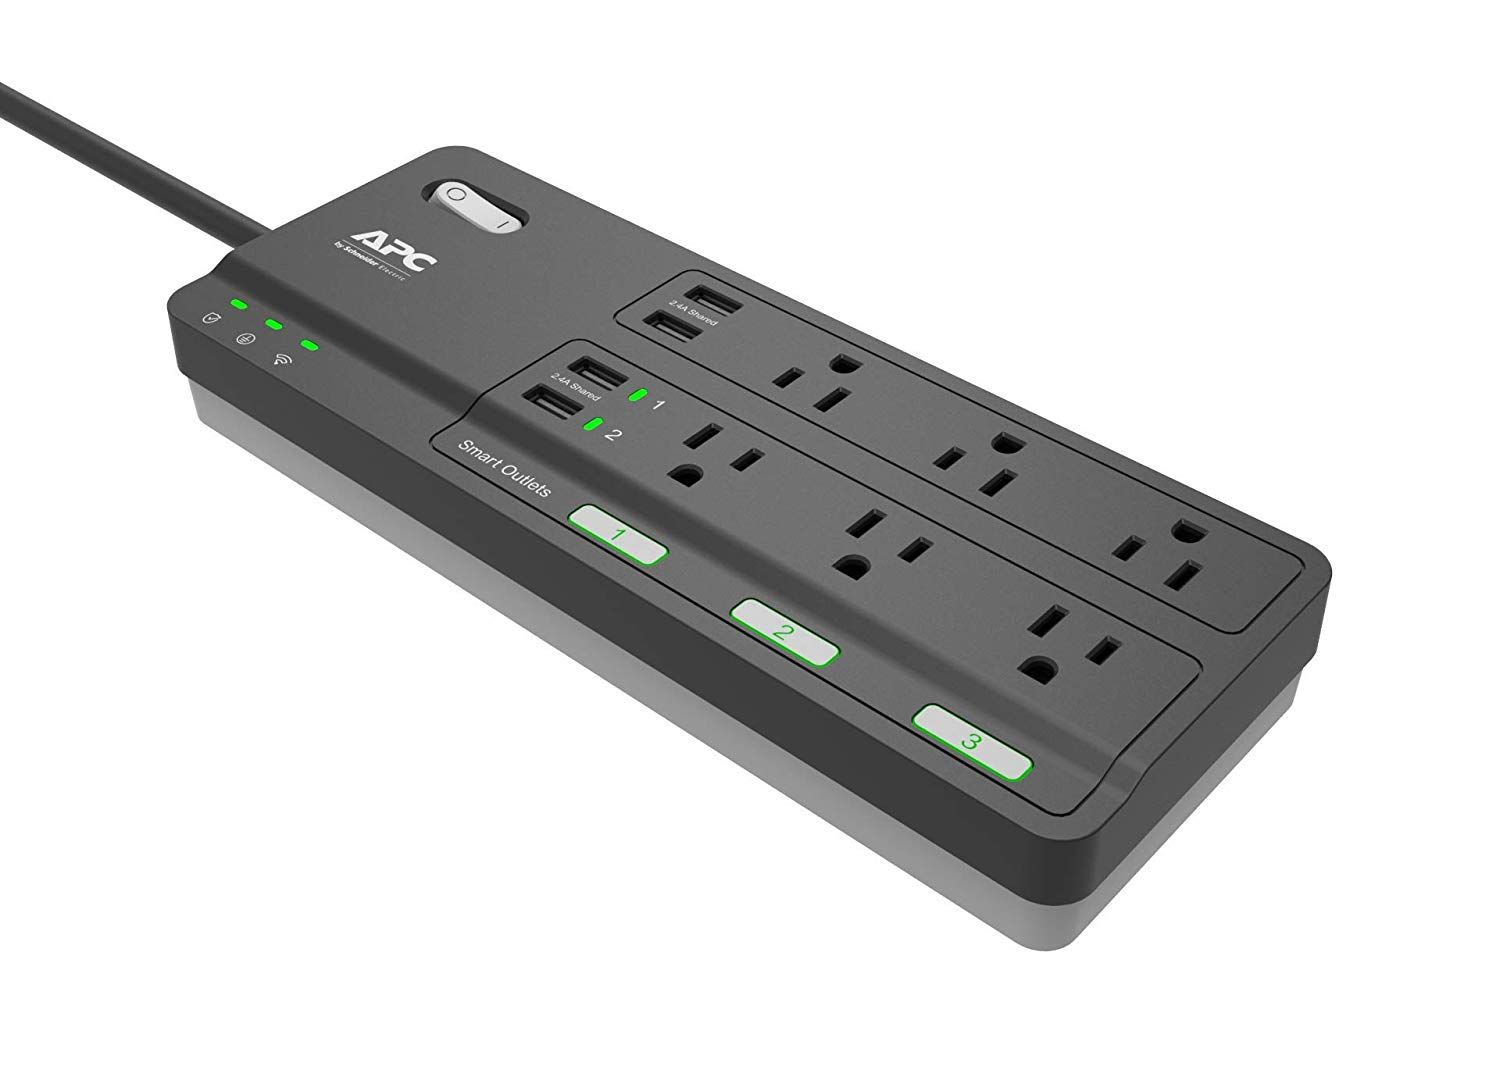 Apc Smart Plug Surge Protector Power Strip 3 Alexa Smart Plugs 6 Outlets Total With 2160 Joules Of Surge Protect Smart Plug Smart Plugs Power Strip